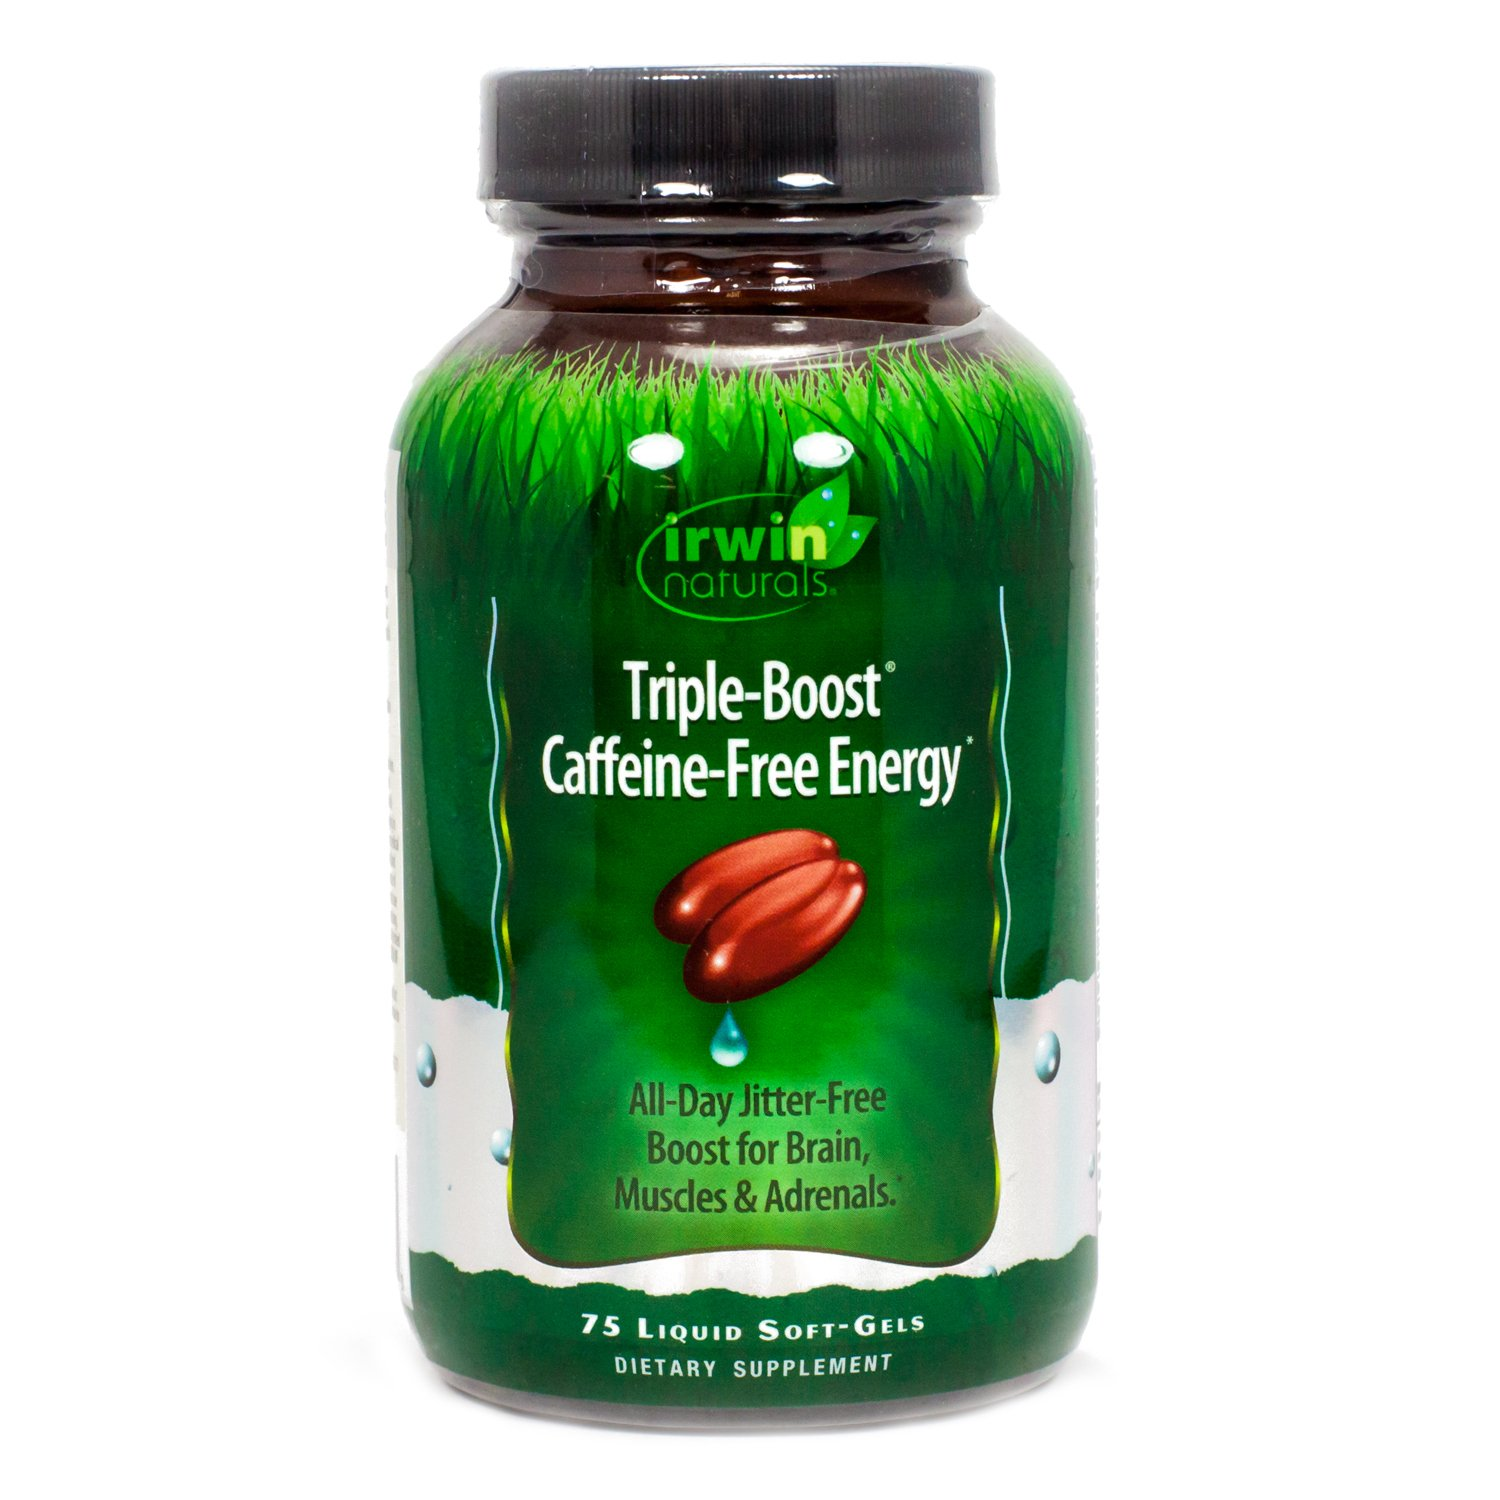 Irwin Naturals Triple-Boost Caffeine-Free Energy All Day Jitter-Free Boost for Brain, Muscles & Adrenals - 75 Liquid Soft-Gels